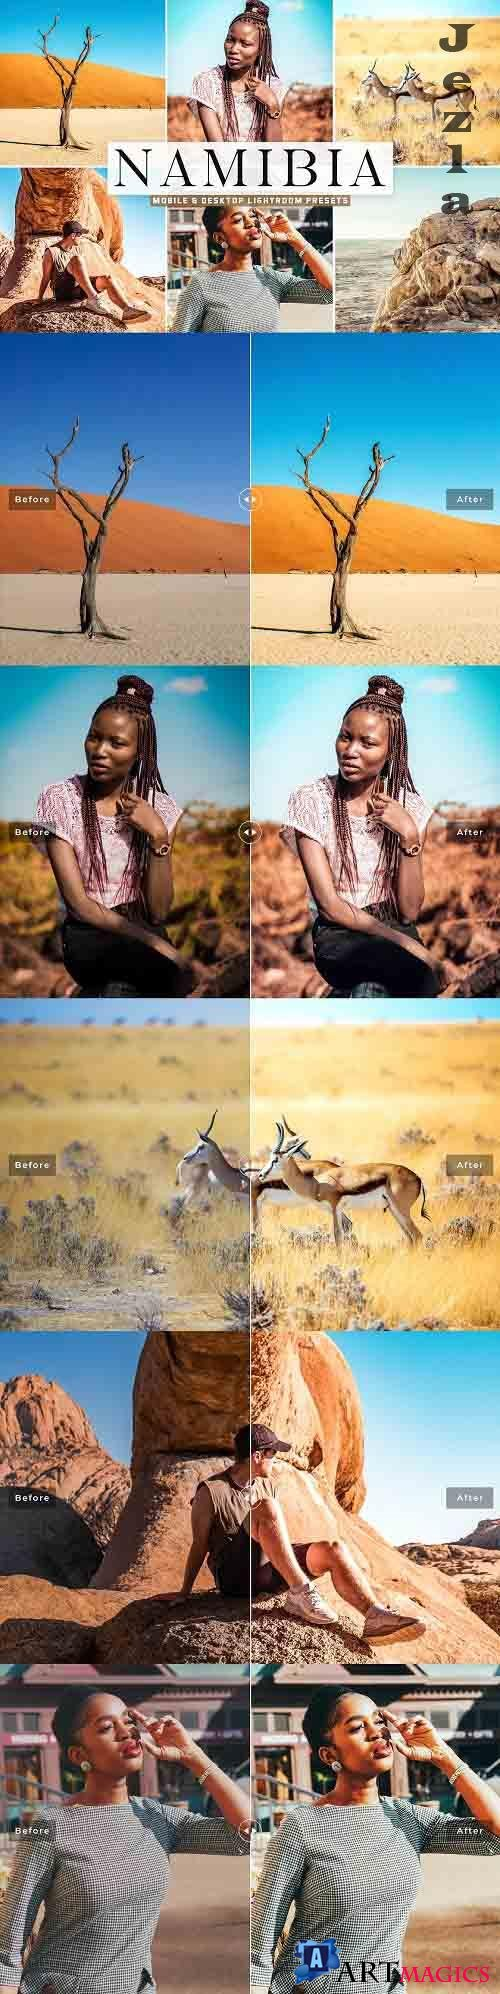 Namibia Pro Lightroom Presets - 5610751 - Mobile & Desktop